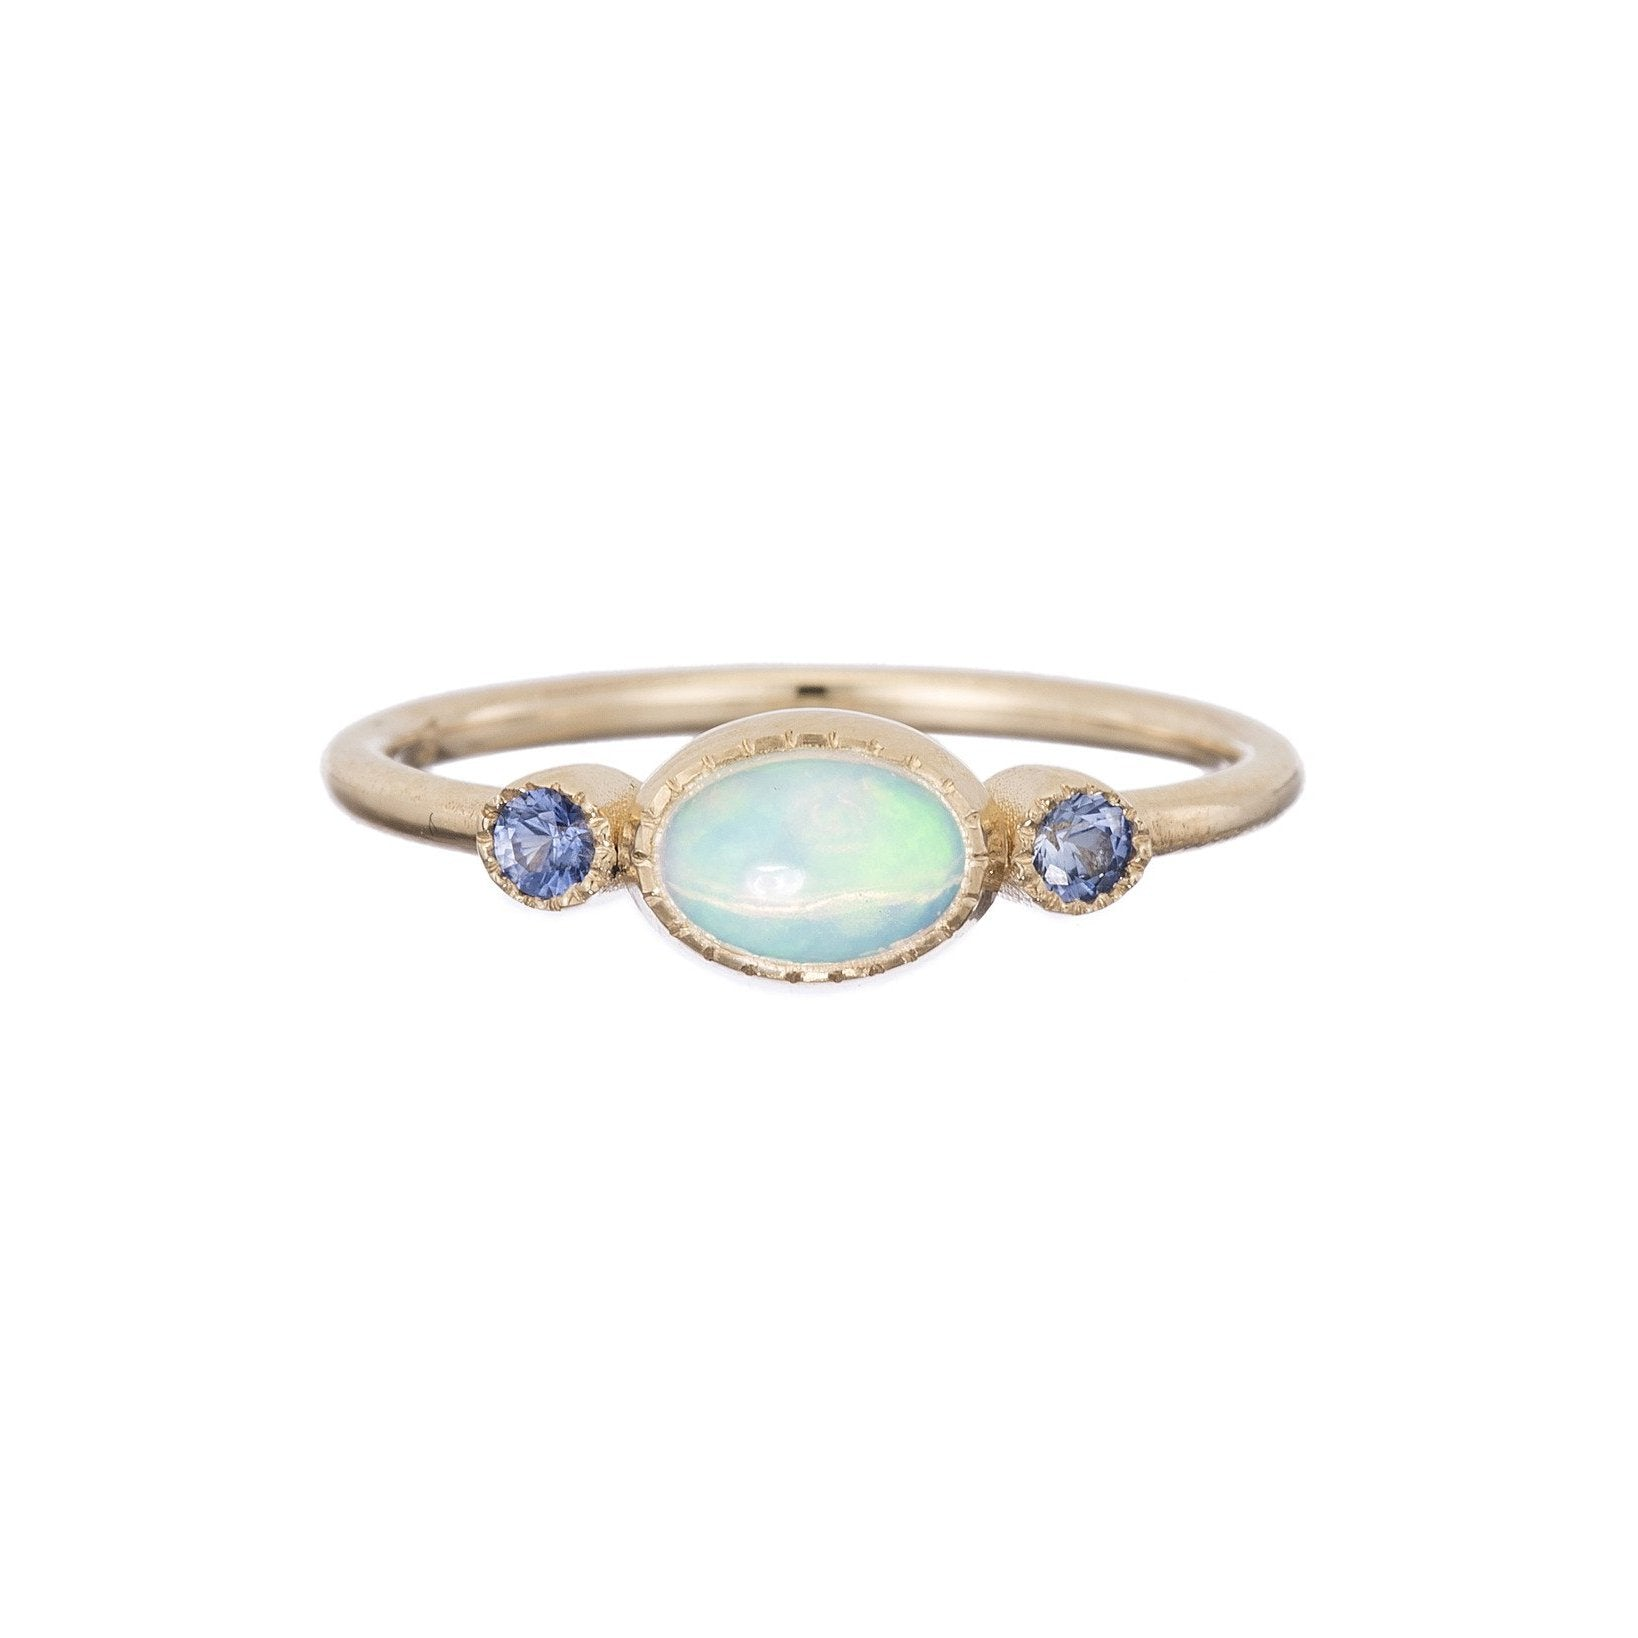 ring sapphire atperrys opal blue crystal healing products crystals